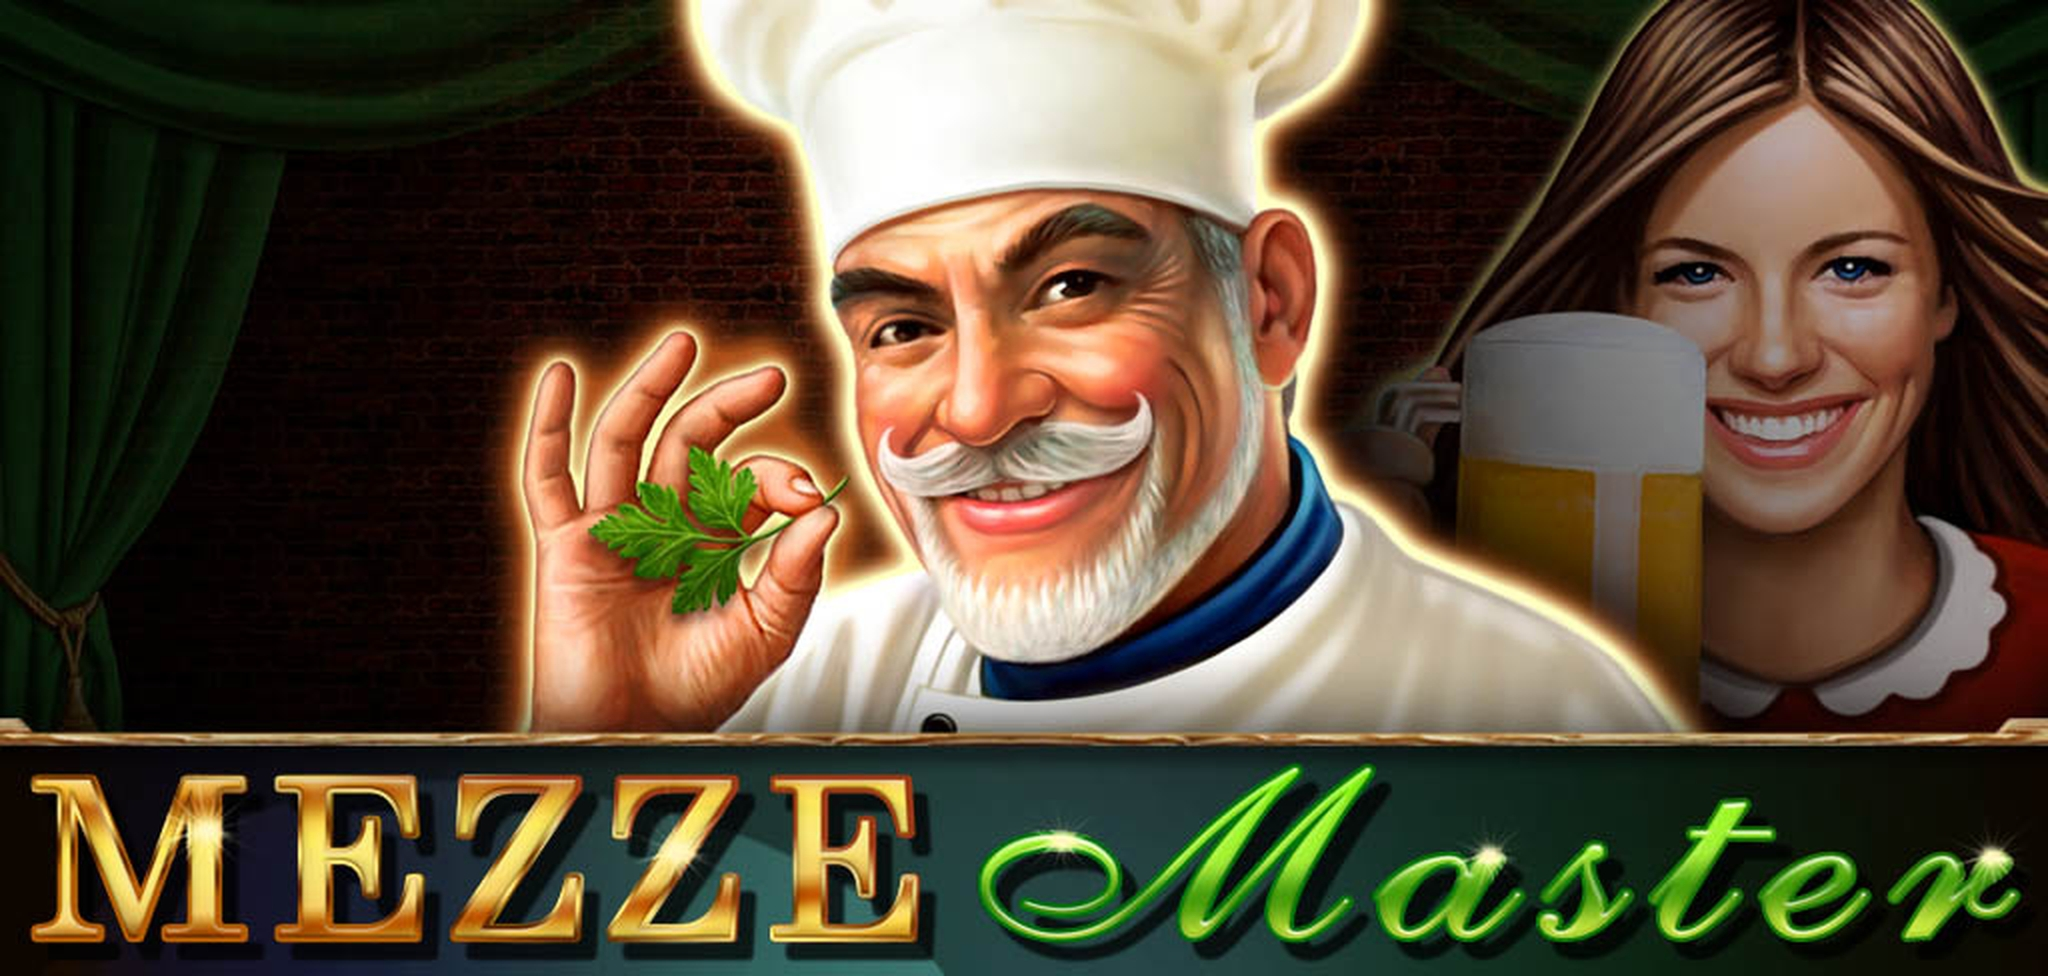 The Mezze Master Online Slot Demo Game by casino technology